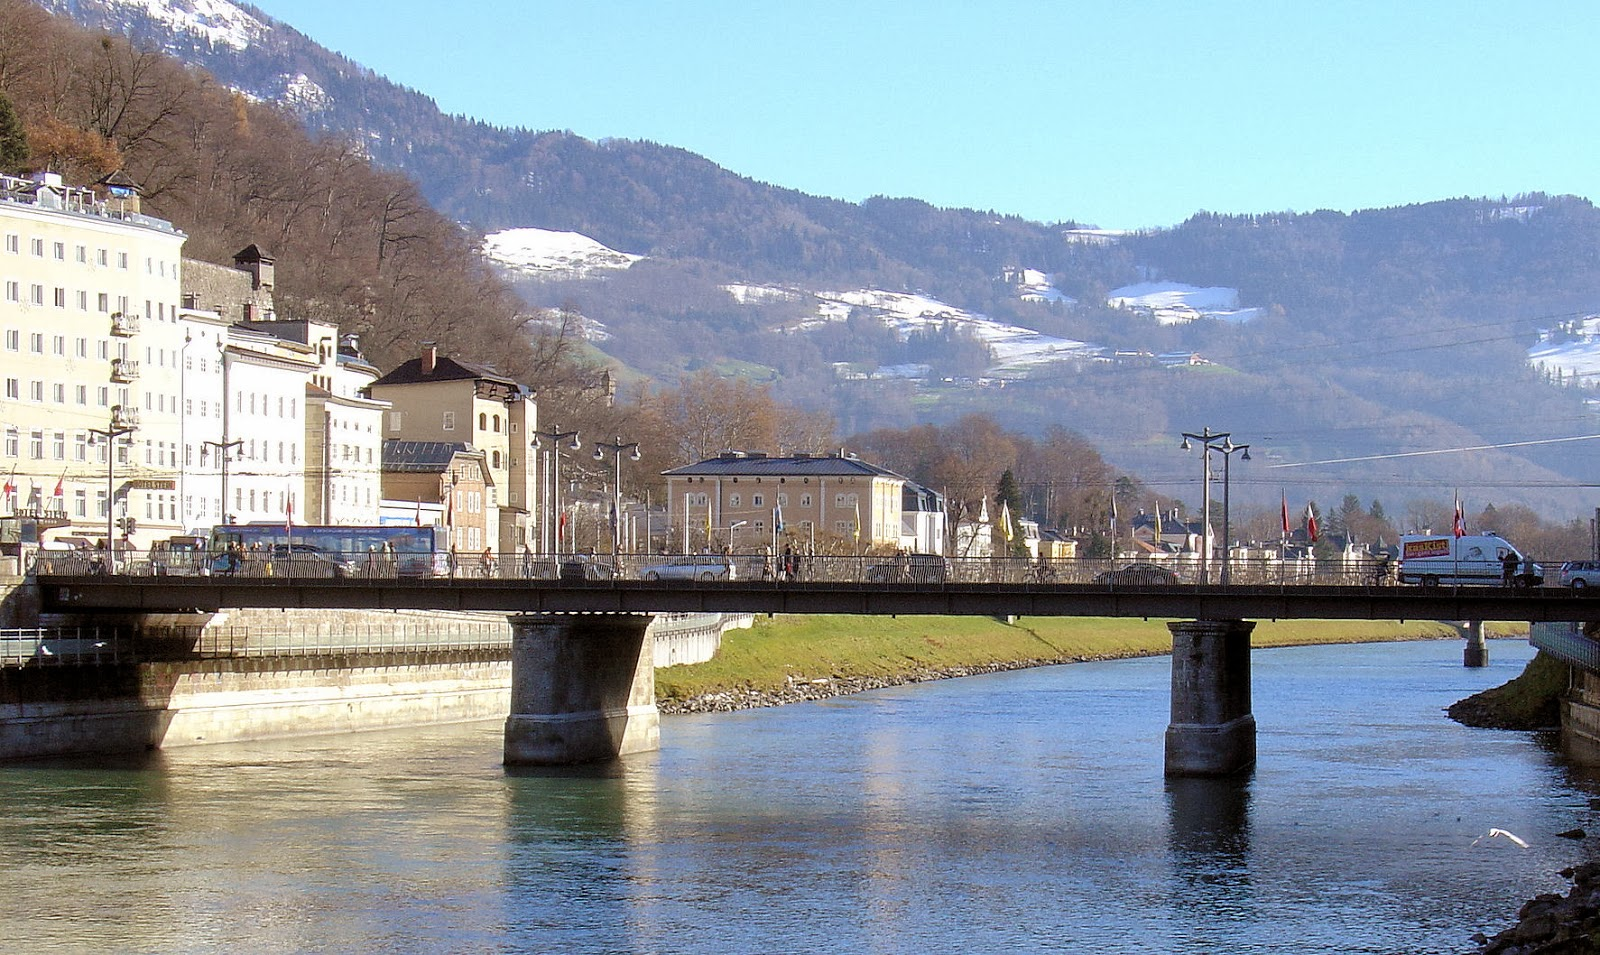 The 'Staatsbrücke' or Public Bridge to our left as we crossed the Salzach River is the 10th bridge to stand at this location and was completed by forced Nazi slave labor from Eastern Europe beginning in from 1939 through the WWII.